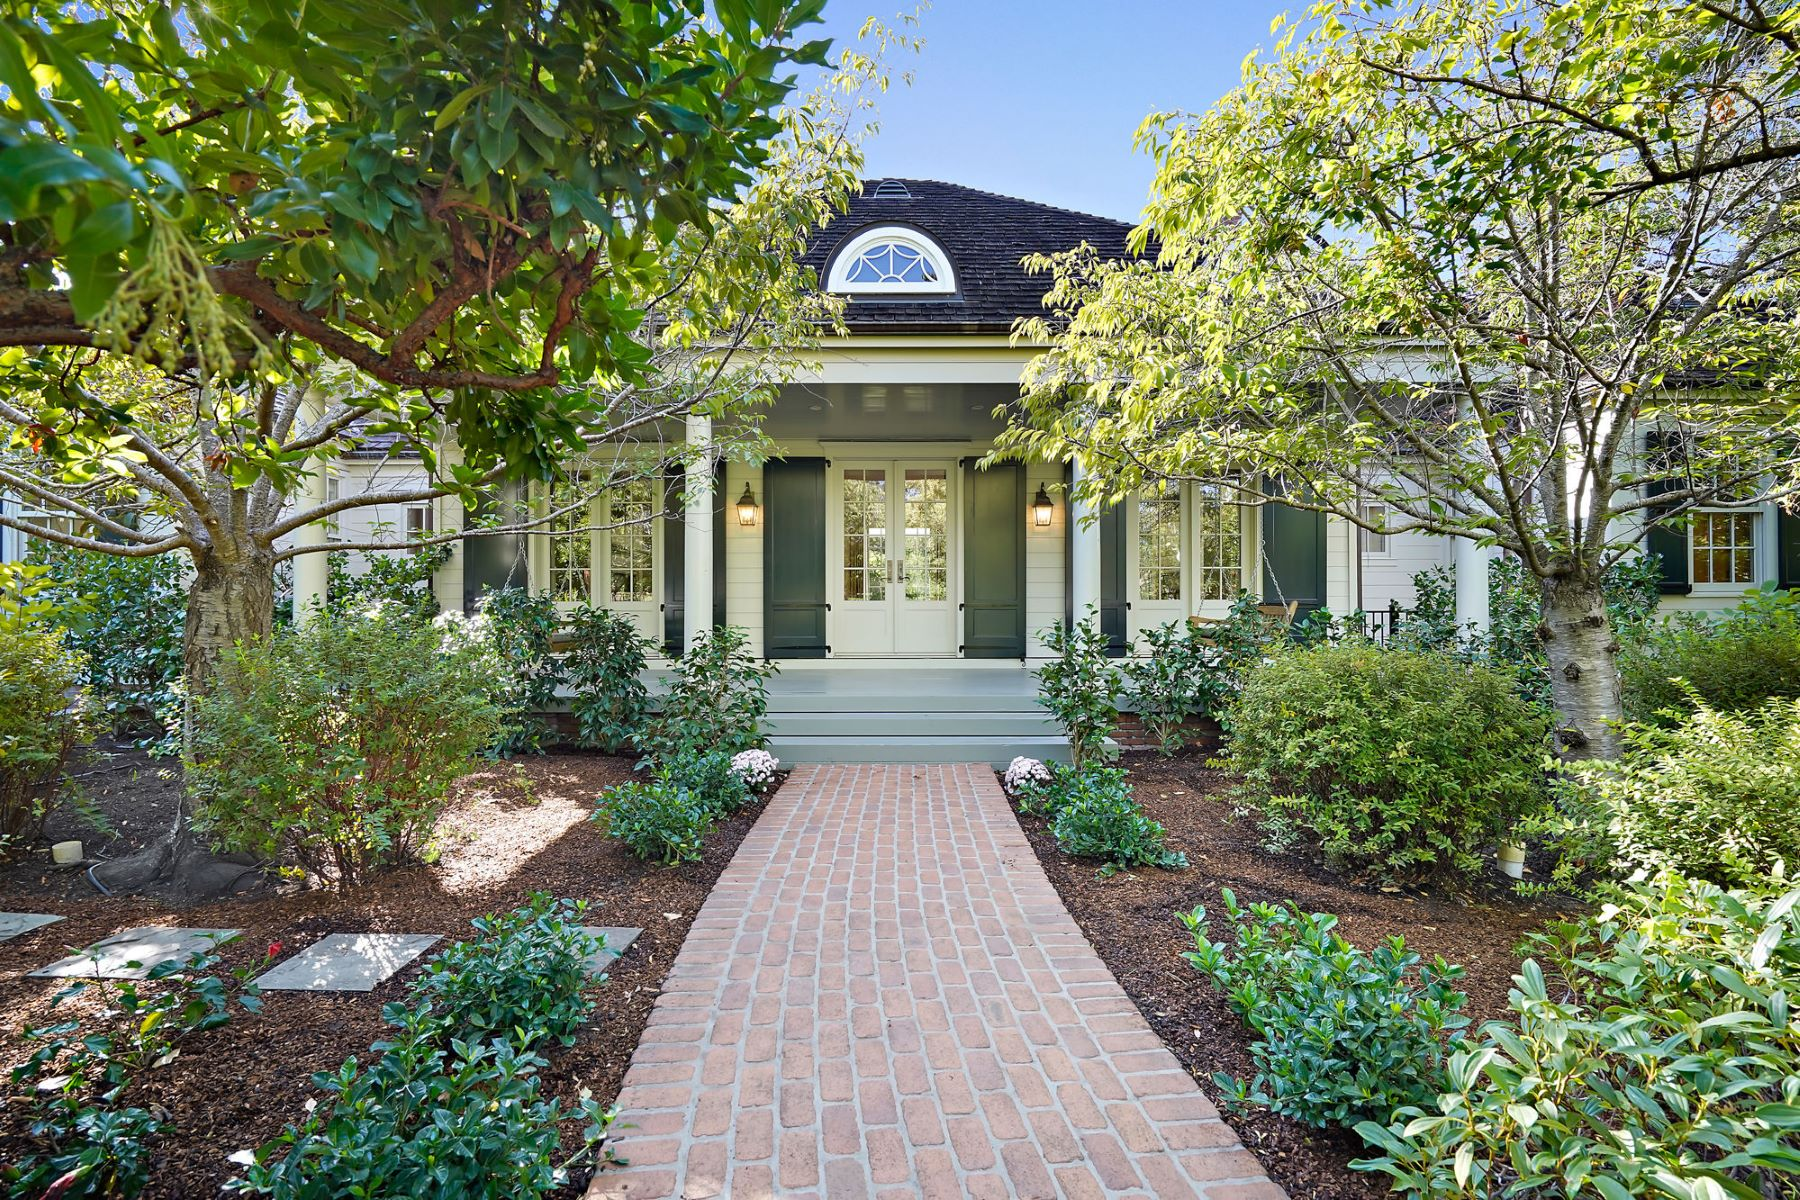 Single Family Homes for Sale at Beautiful and Inviting Estate 901 Hillsborough Boulevard Hillsborough, California 94010 United States